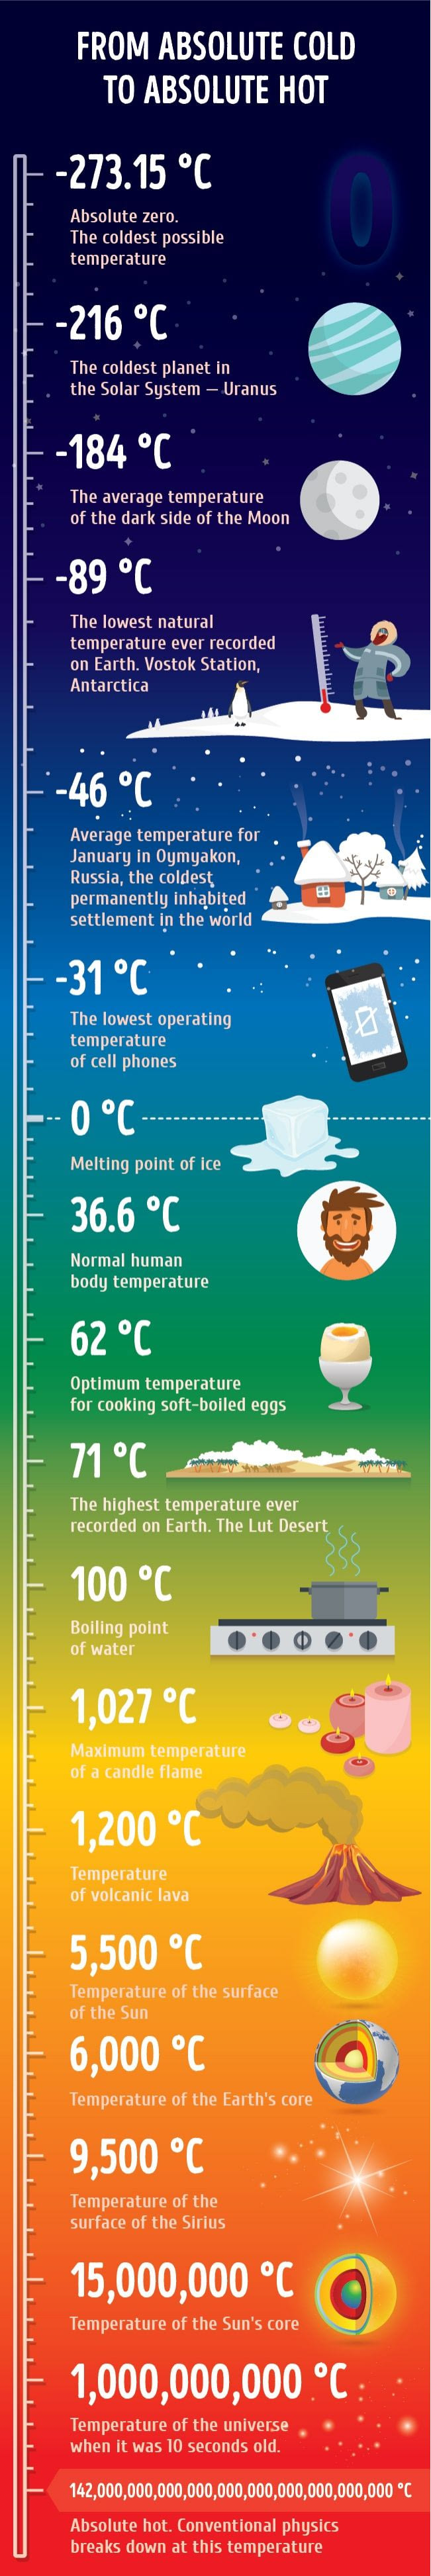 The journey from absolute zero to 'absolute hot'